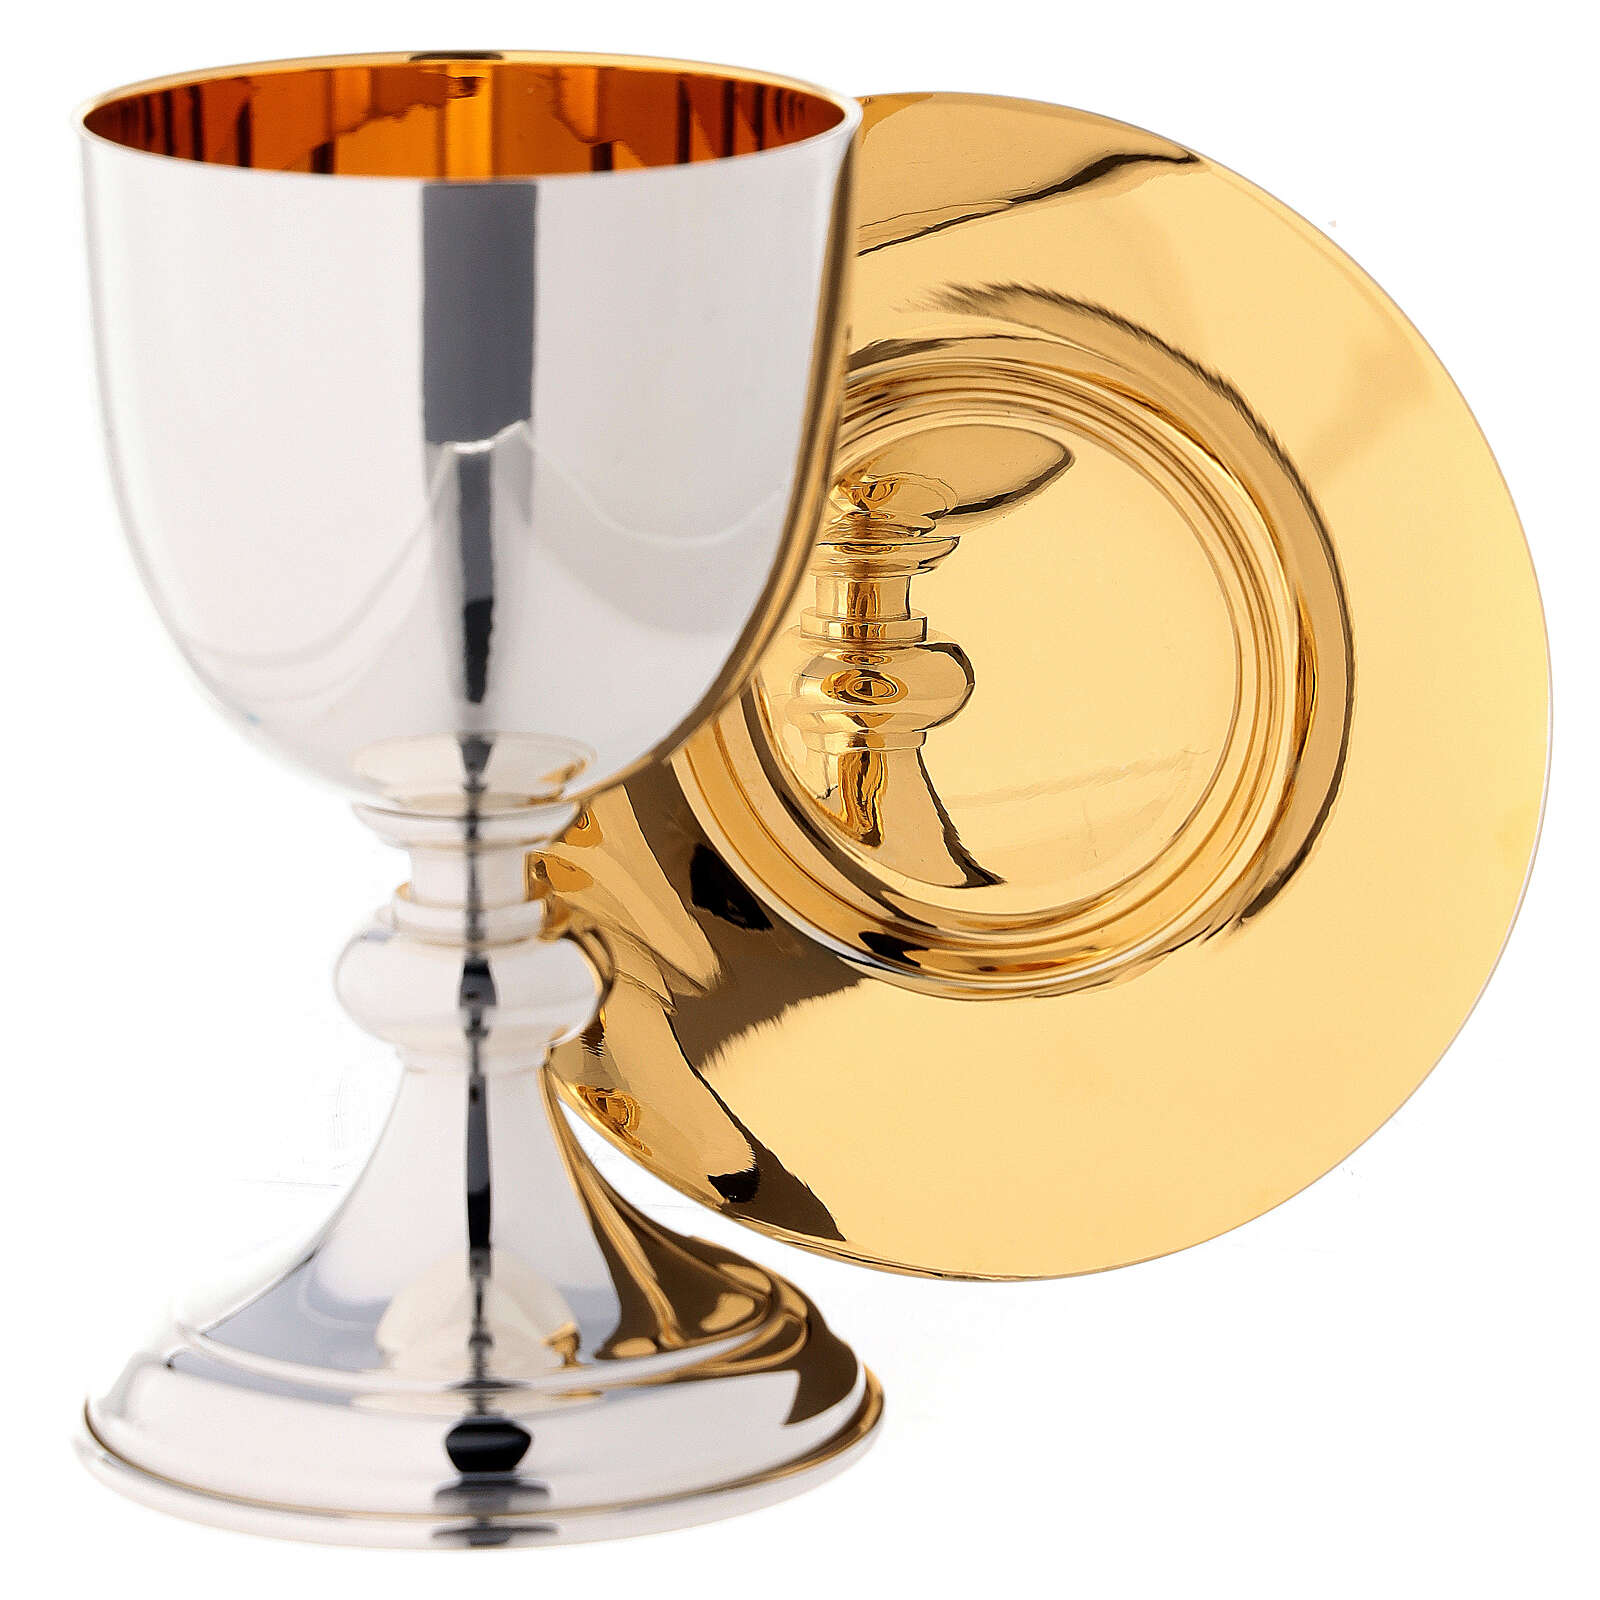 Travel chalice and paten Molina silver-plated brass gilt interior 4